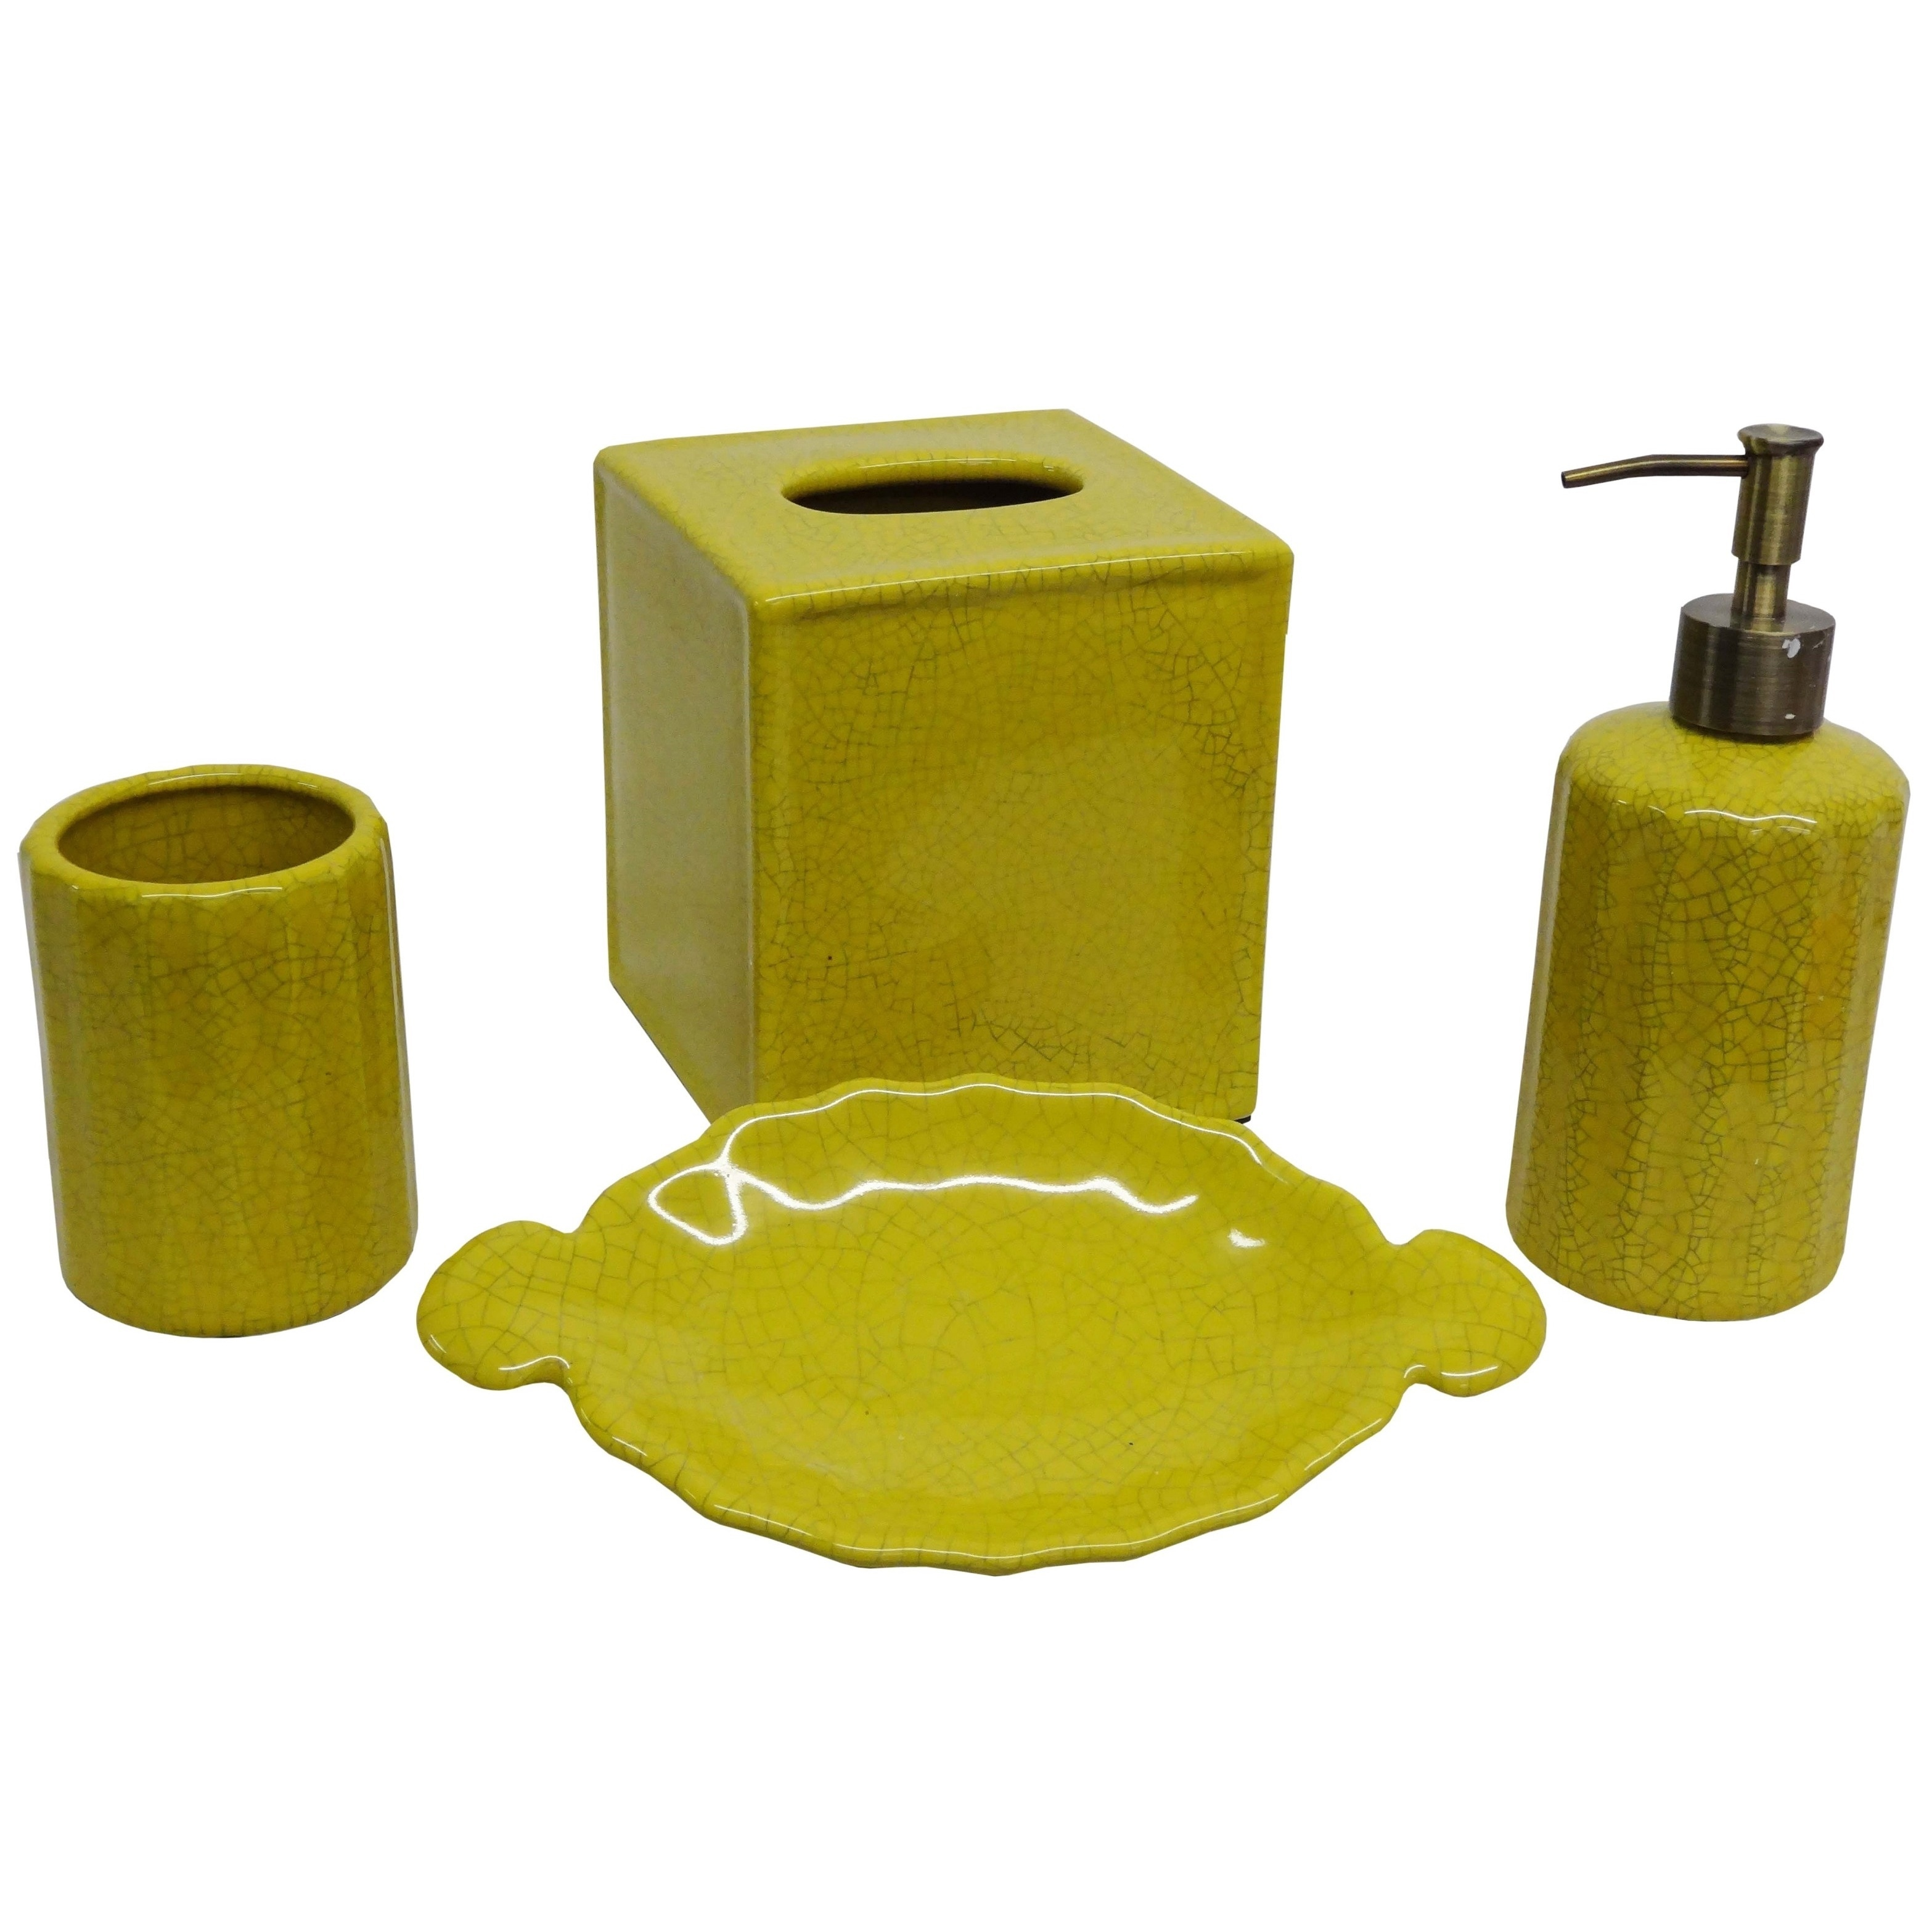 Crackle bath accessories compare prices at nextag for Gold crackle bathroom accessories